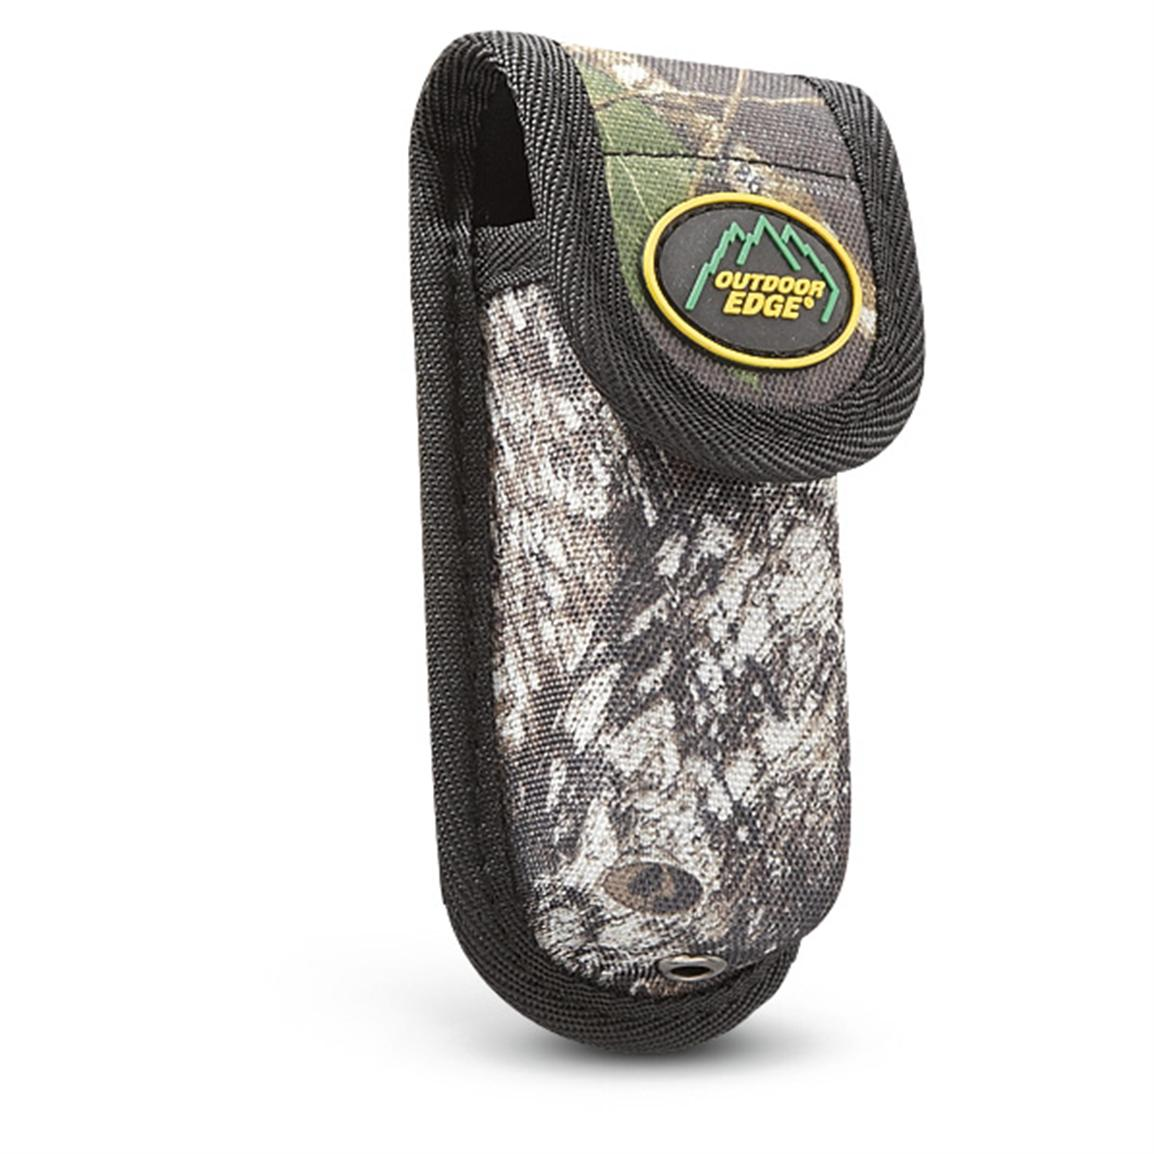 Comes with Camo nylon sheath